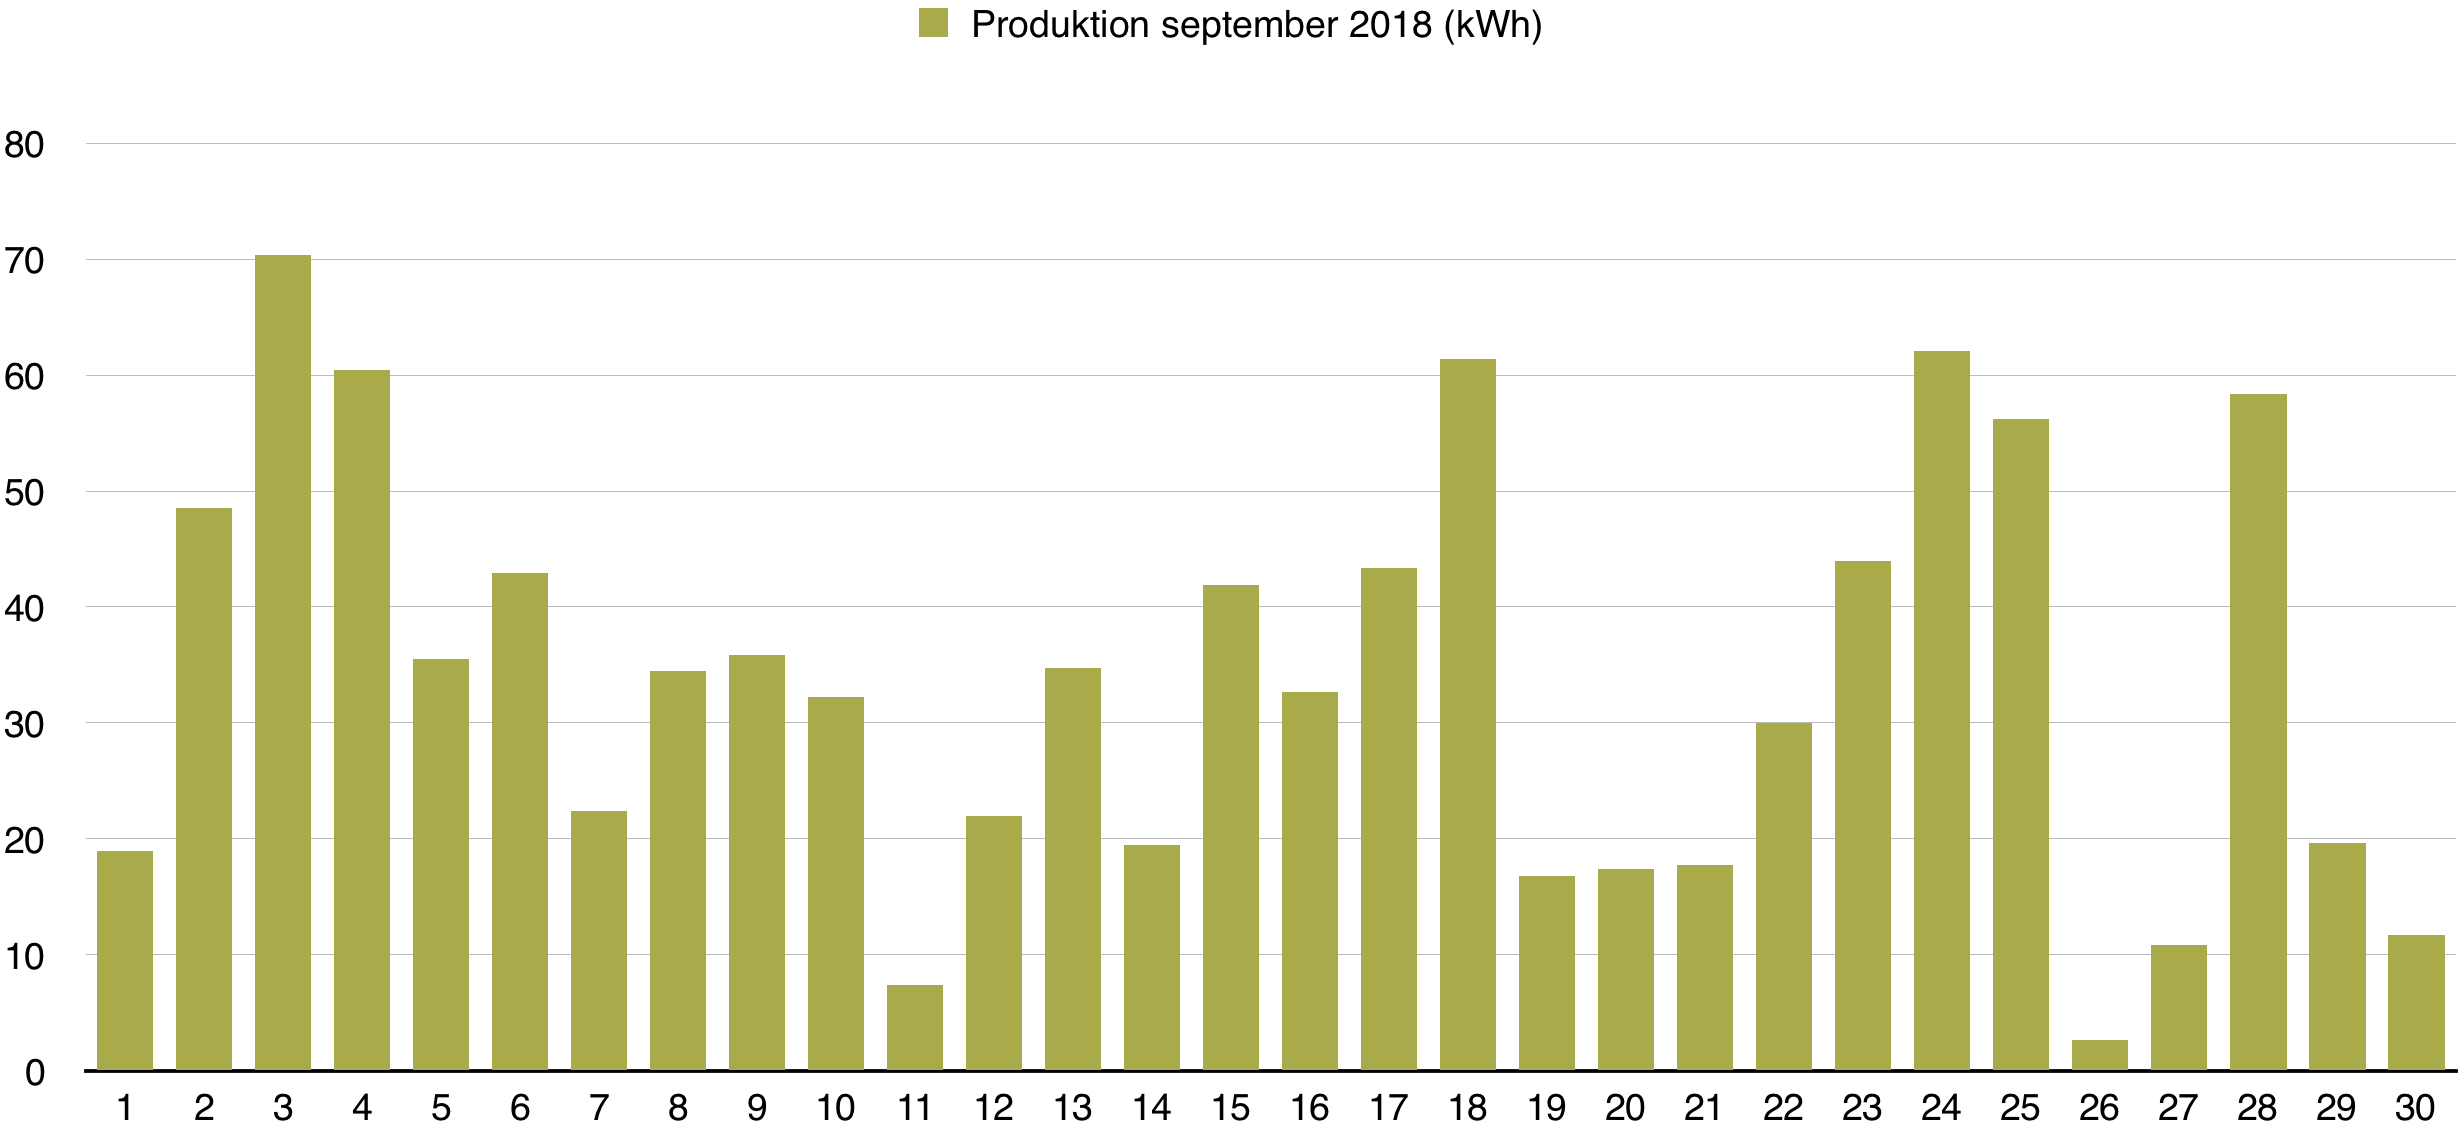 Solceller - Dagsproduktion för september 2018